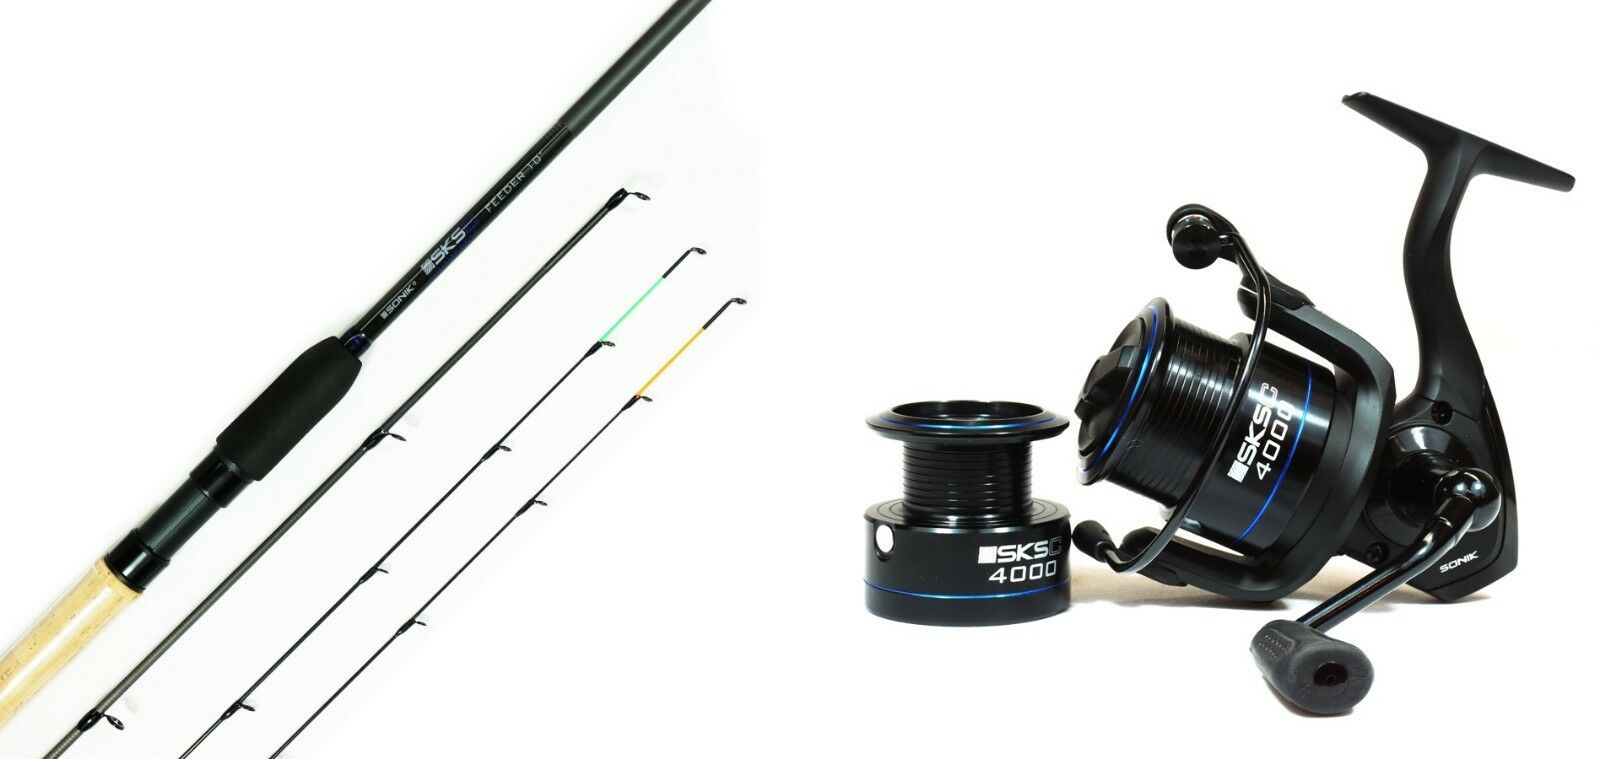 Sonik SKSC 11ft Commercial Feeder Rod + Sonik Commercial Reel Combo Fishing